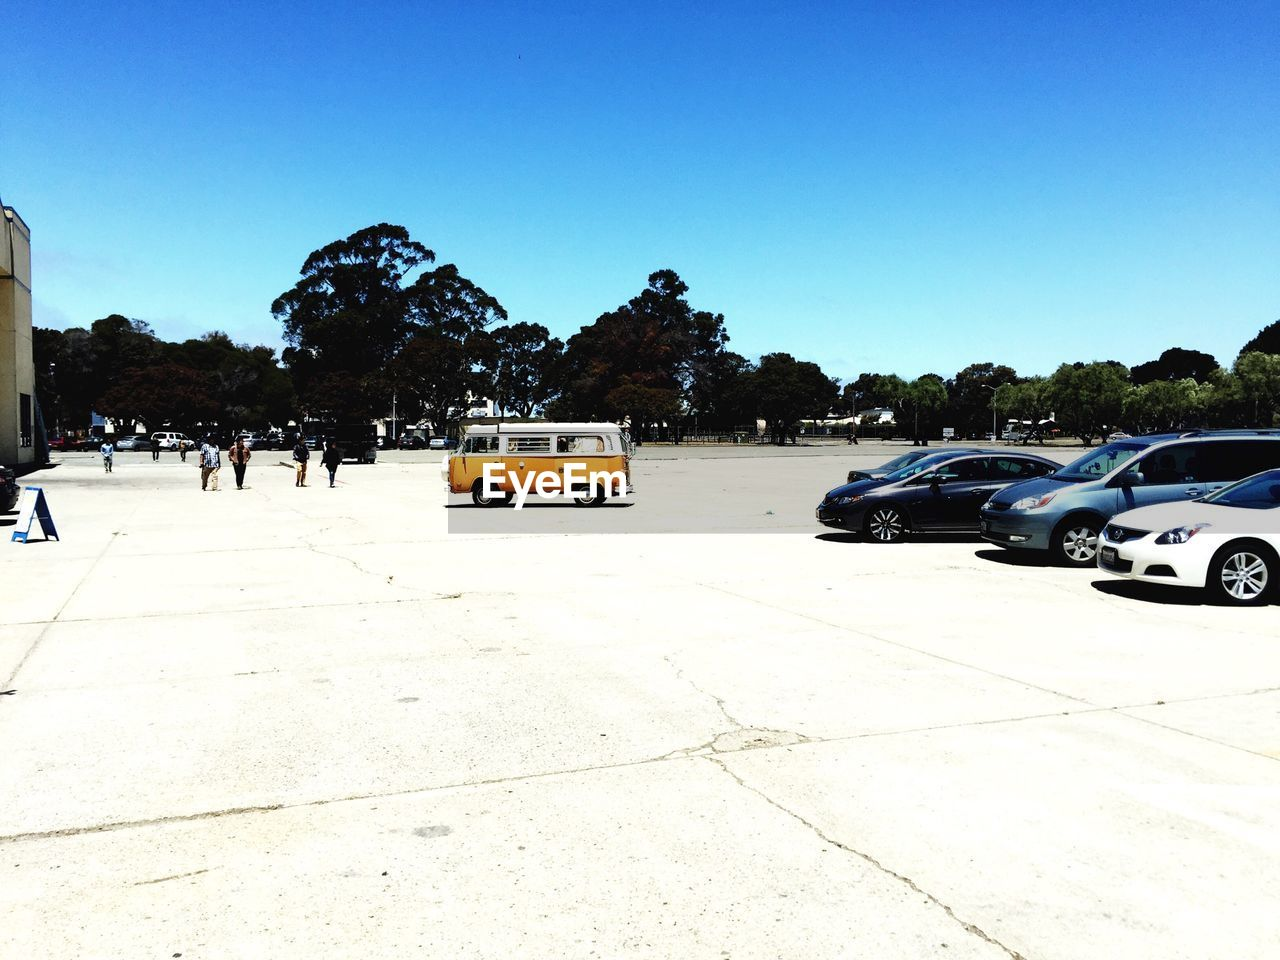 Vehicles parked on road against clear blue sky